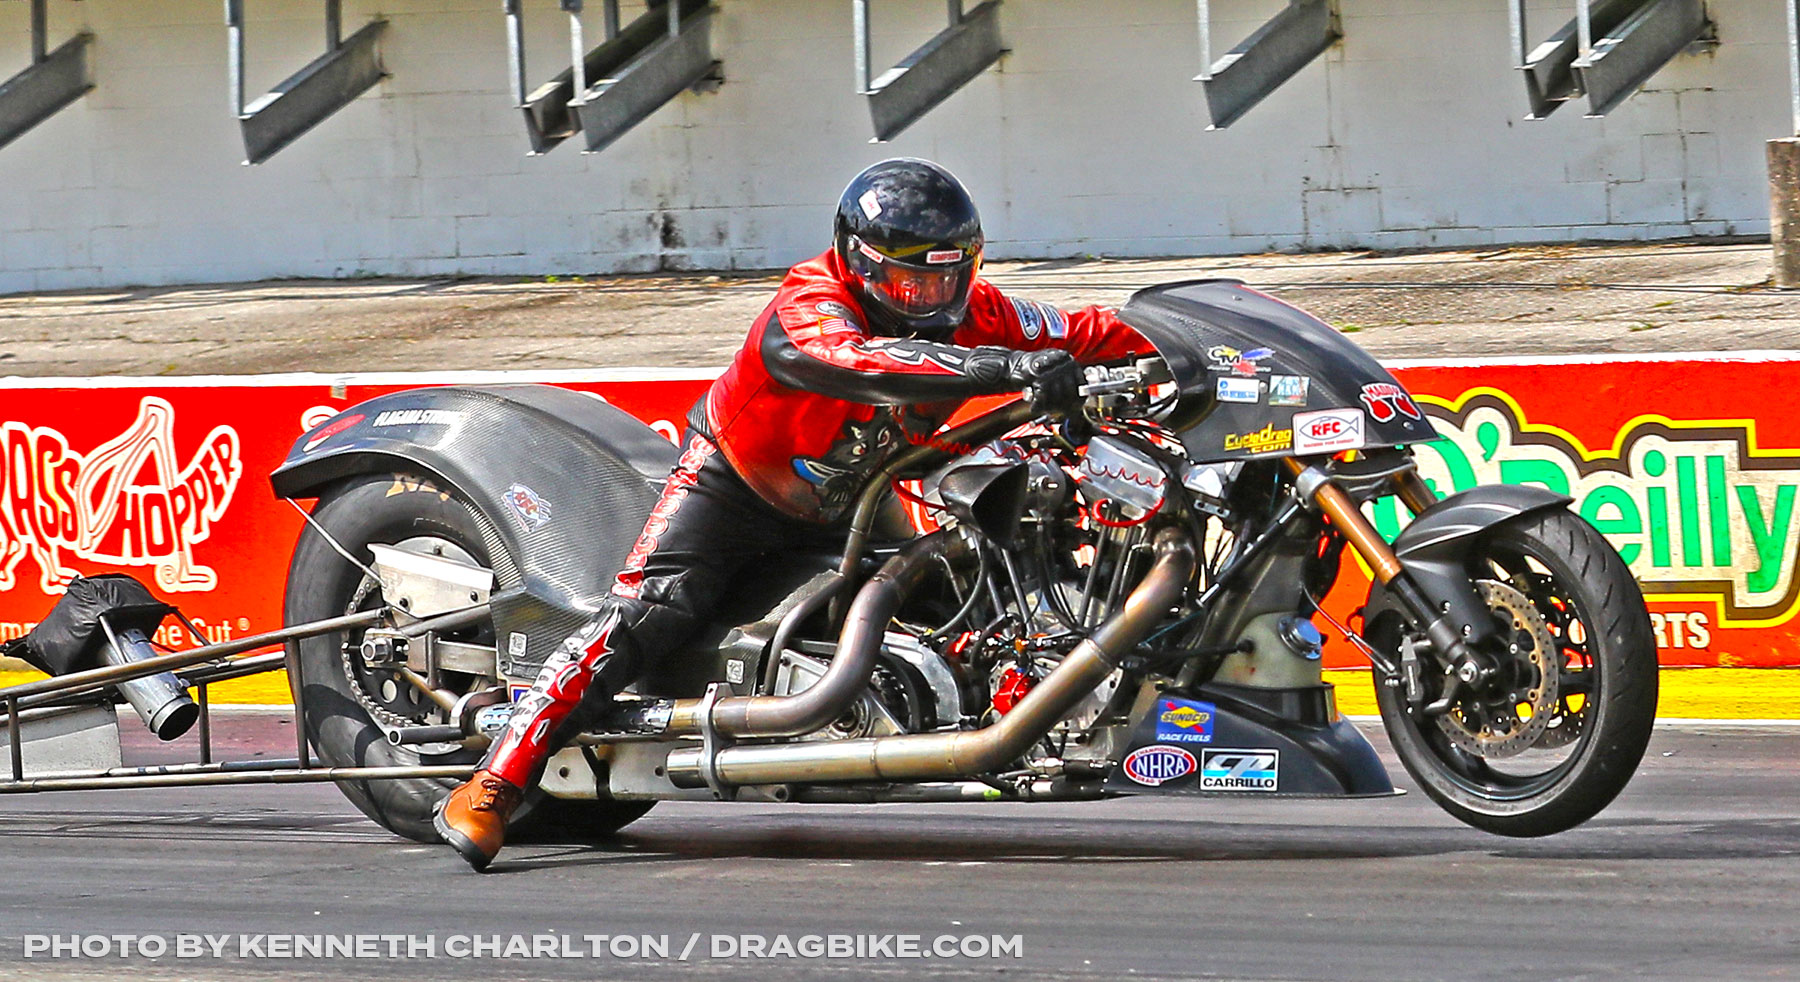 Top Fuel Harly - Randal Andras